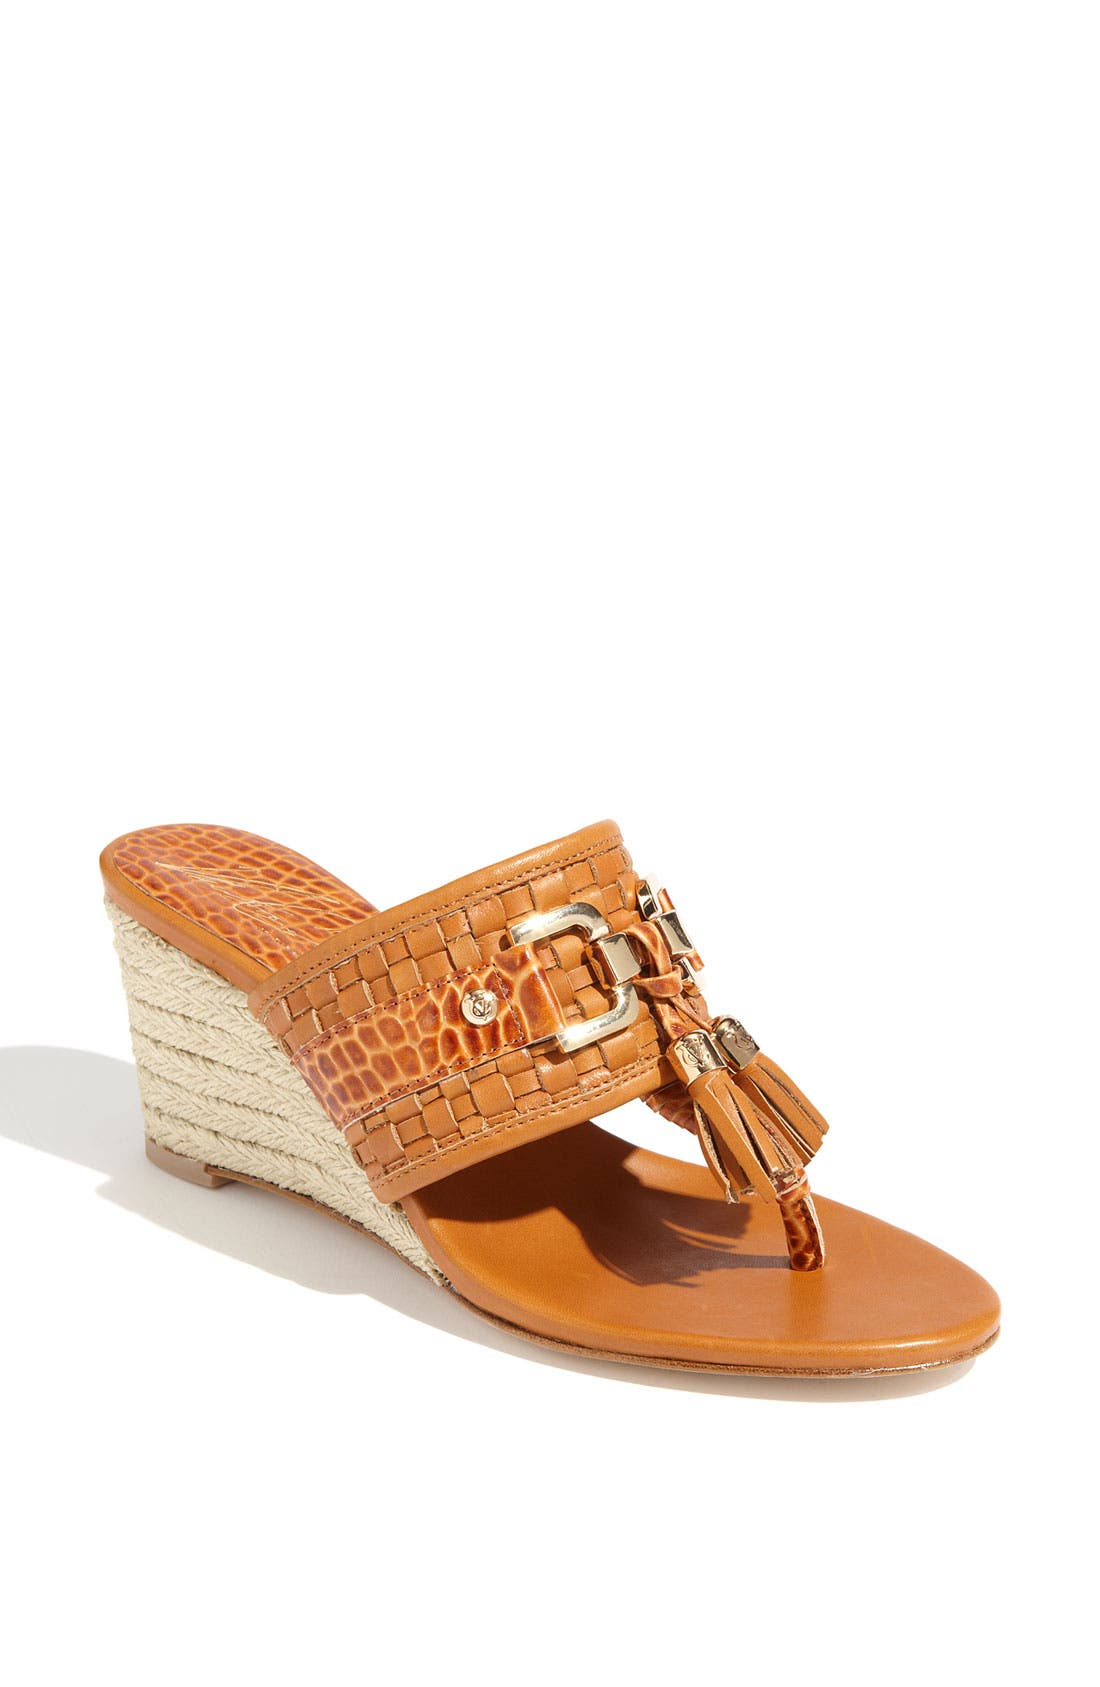 Alternate Image 1 Selected - VC Signature 'Jaclyn' Wedge Sandal